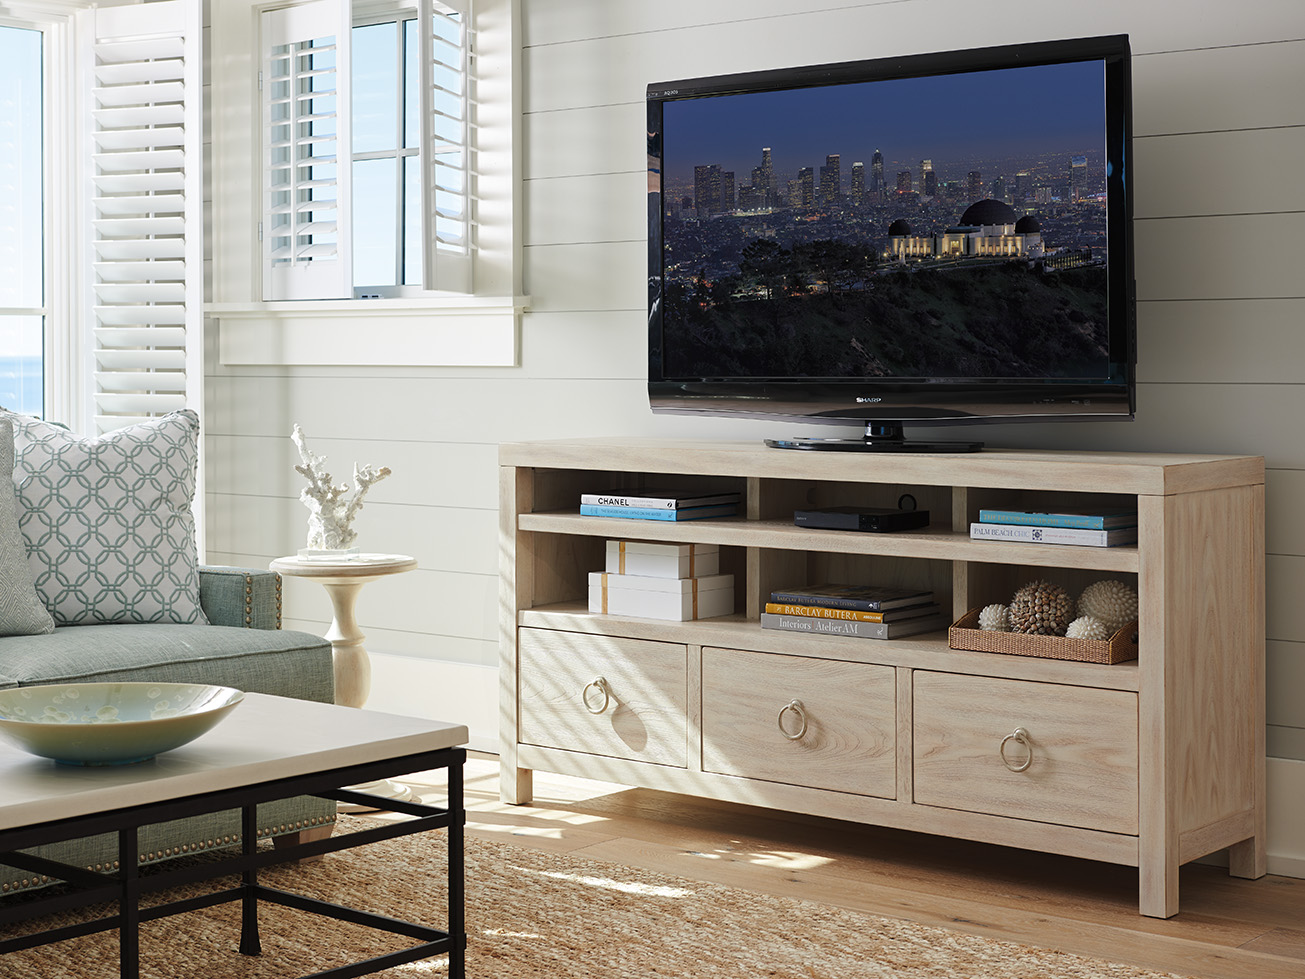 Hilton Head Furniture Store - Introducing Barclay Butera   A New Lifestyle Collection